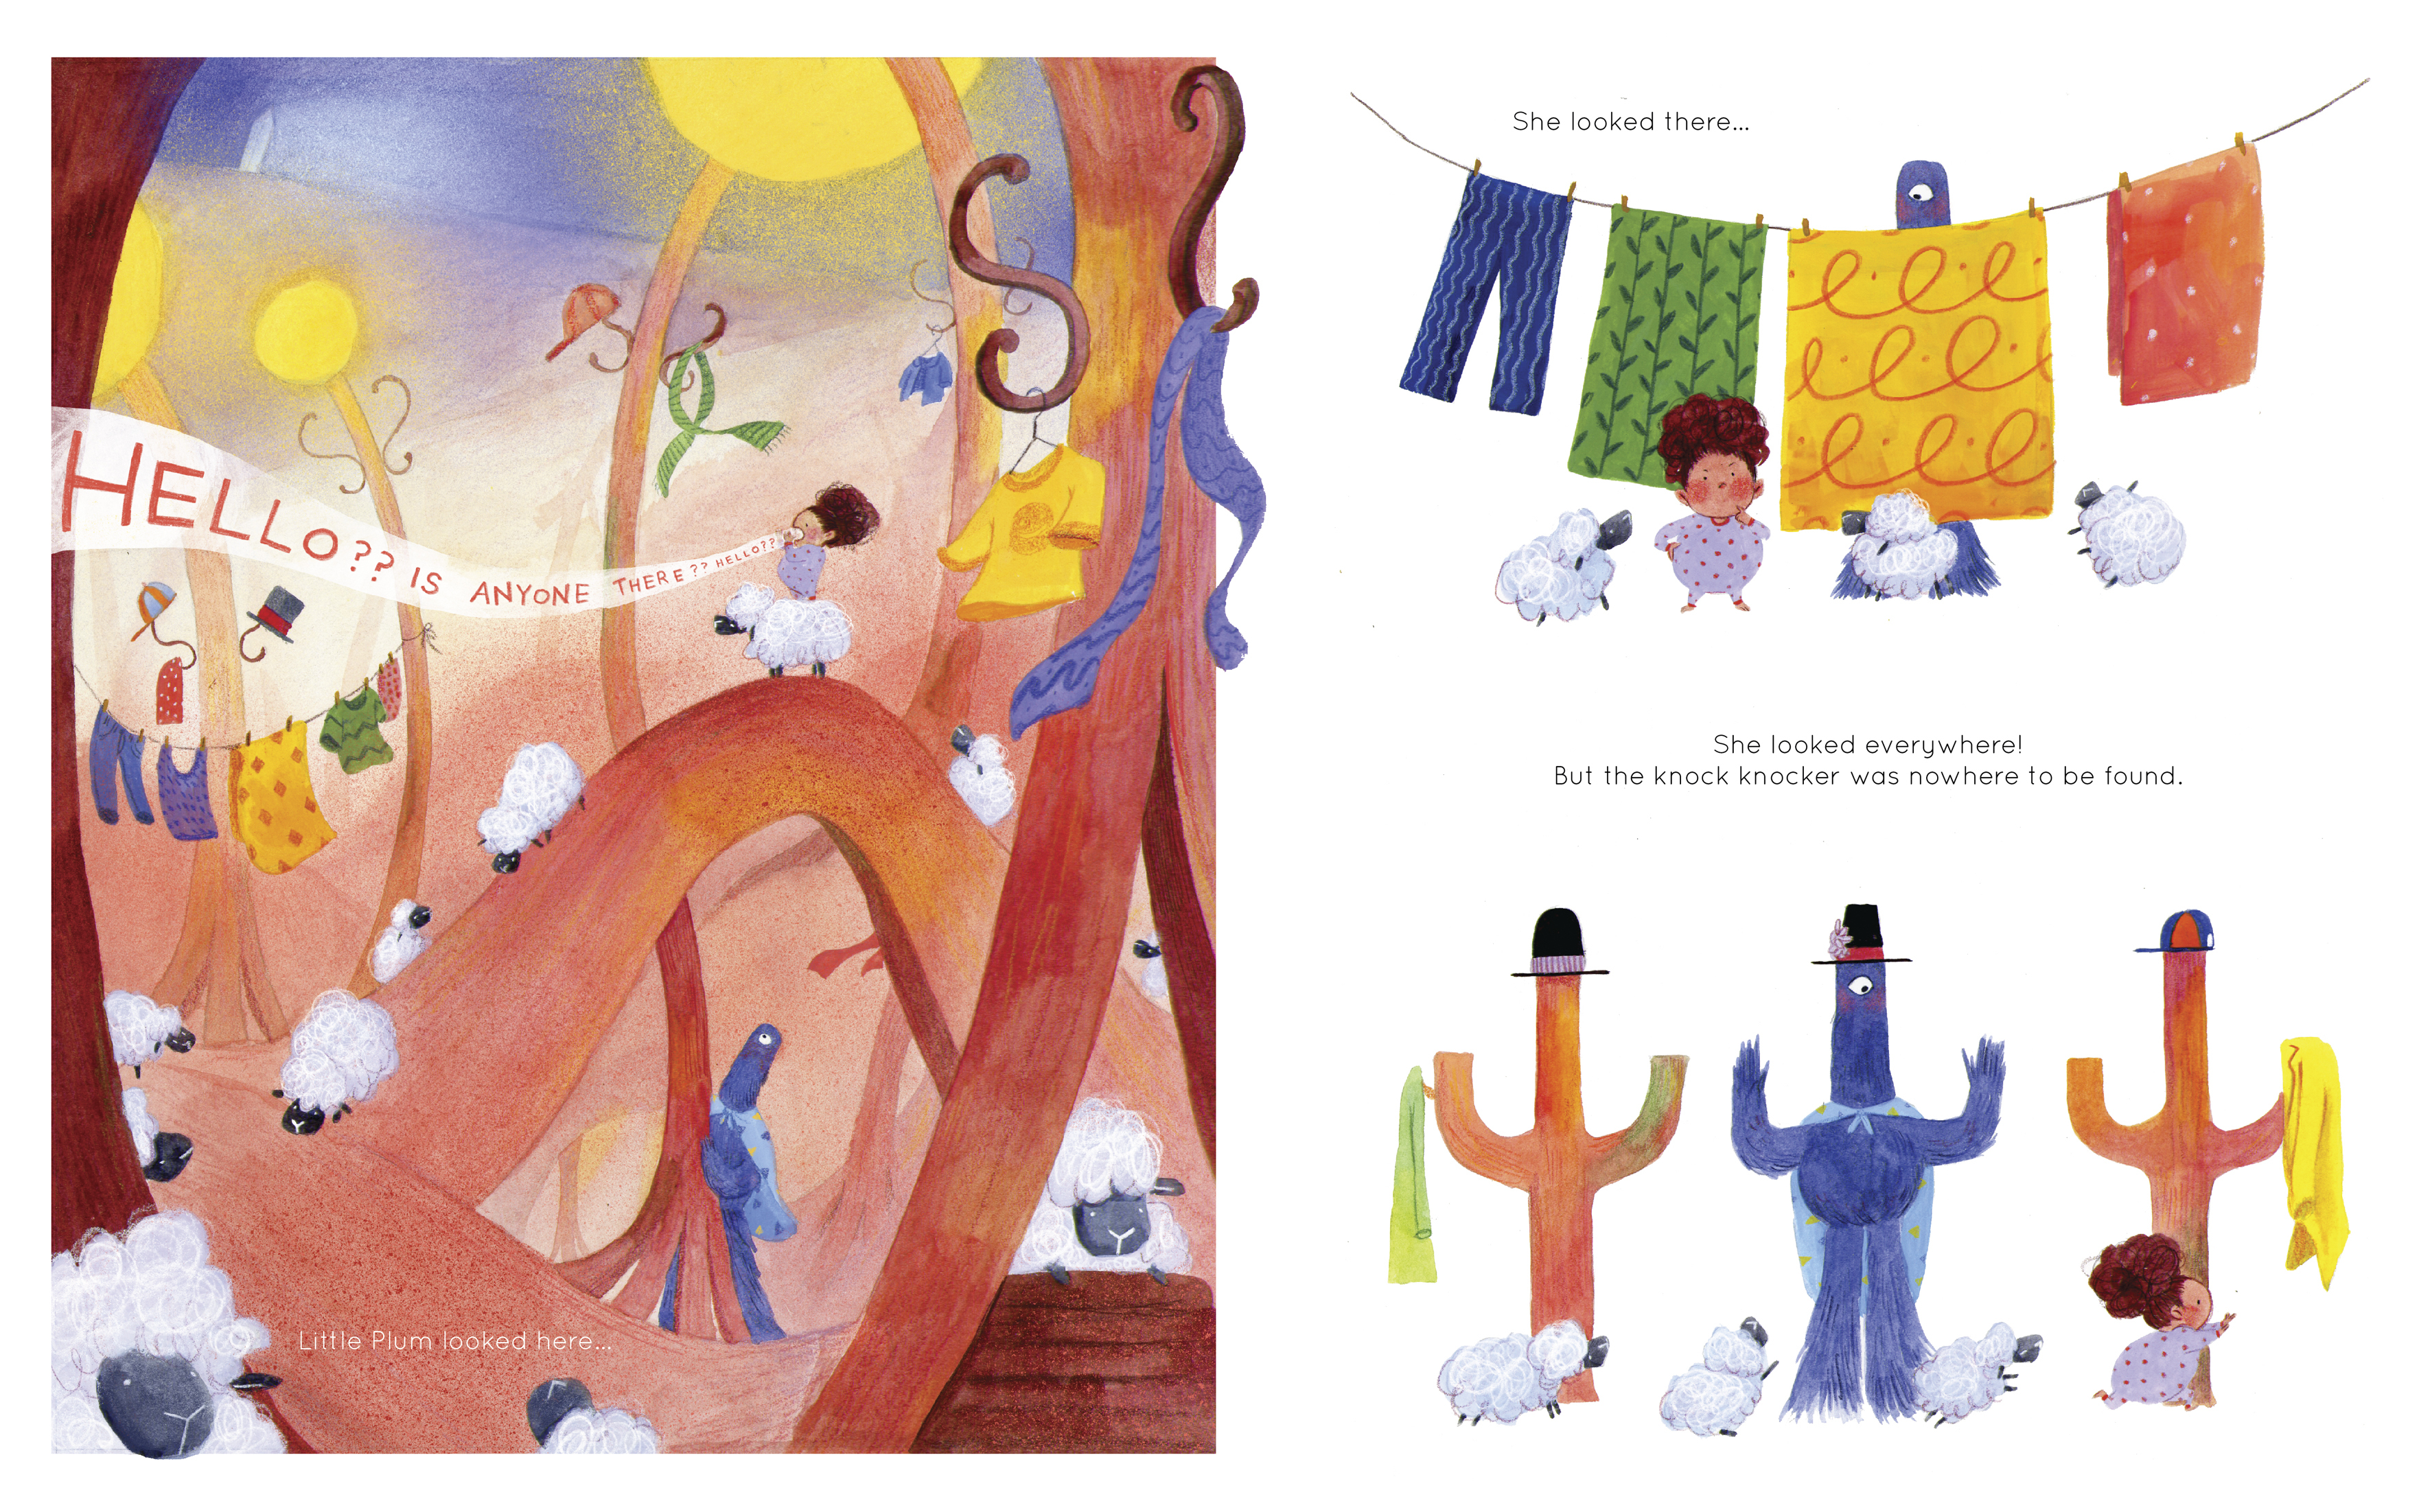 fantastical illustration of a small child searching for something through clotheslines.